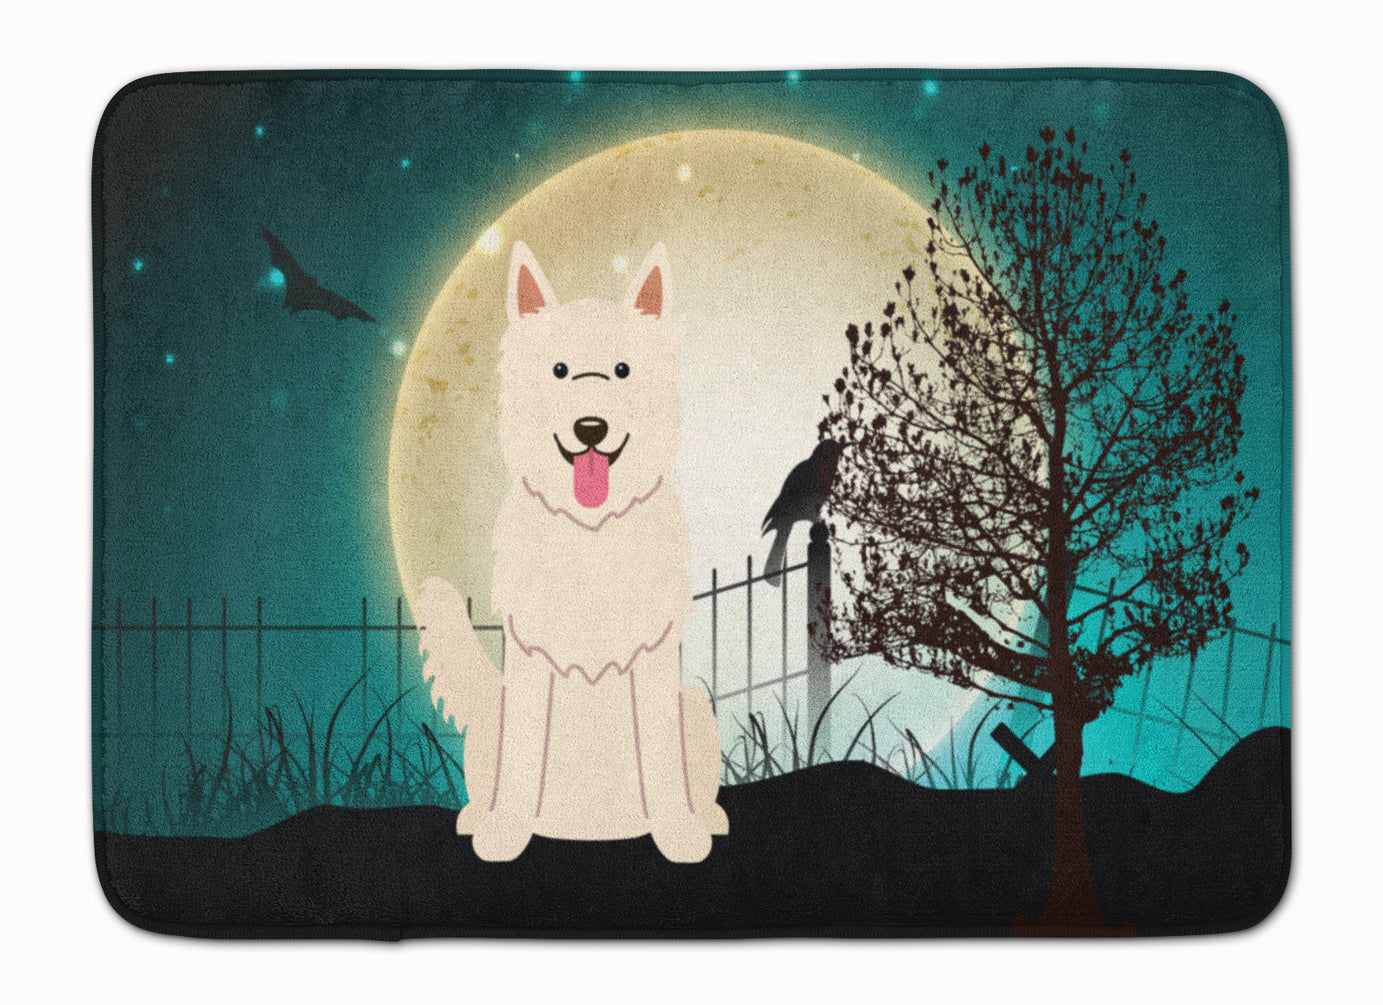 Halloween Scary White German Shepherd Machine Washable Memory Foam Mat BB2235RUG by Caroline's Treasures